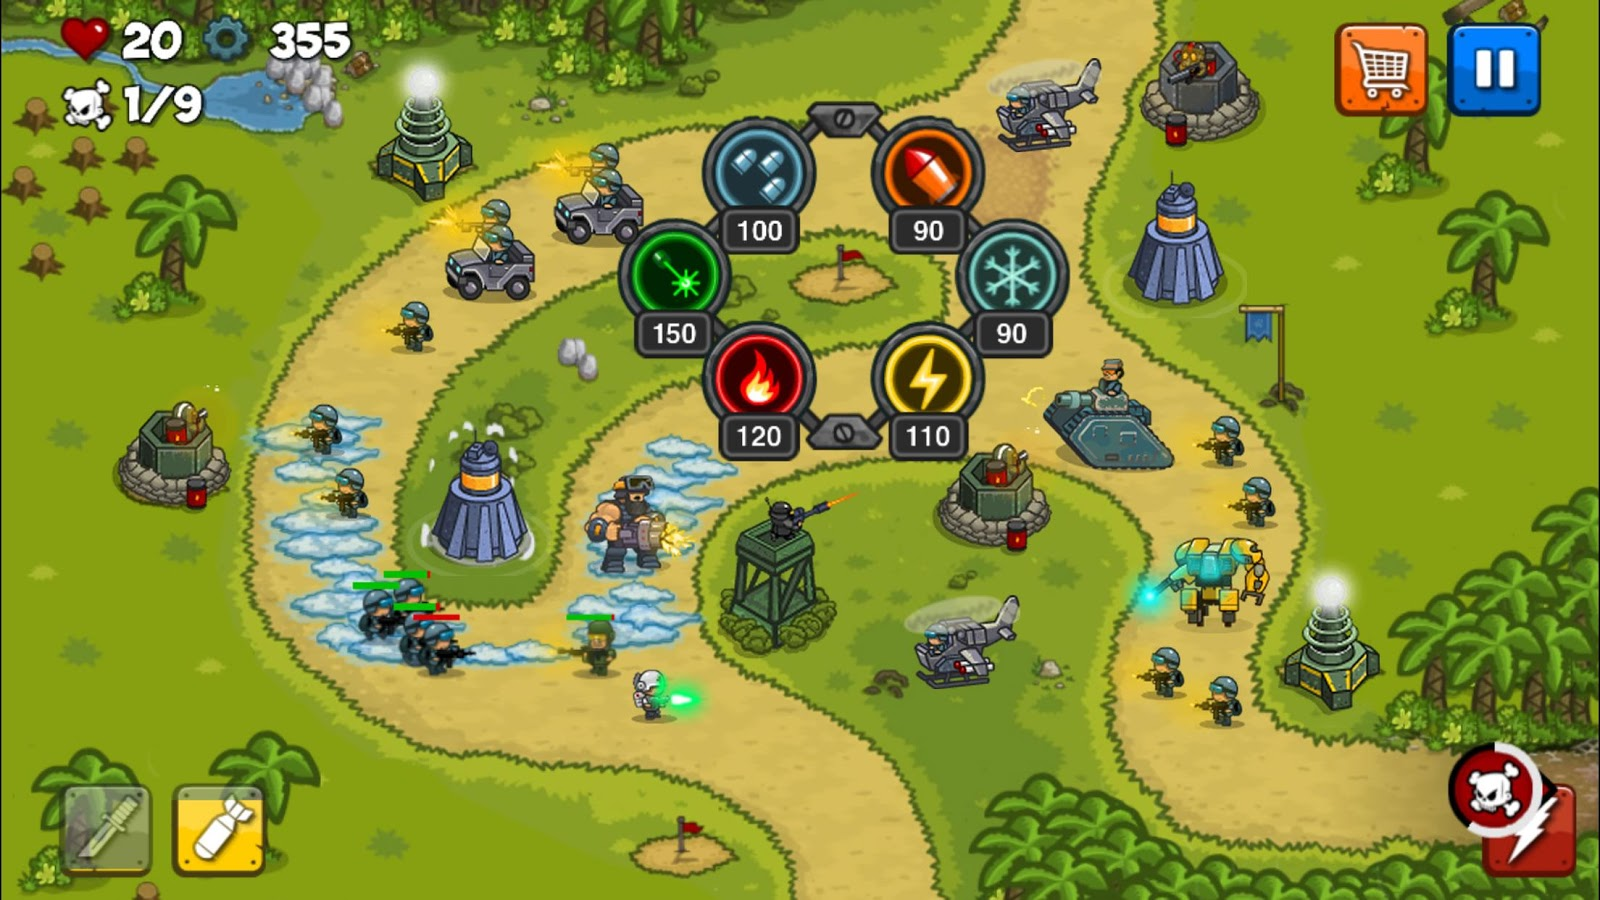 Combat Tower Defense Screenshot 2